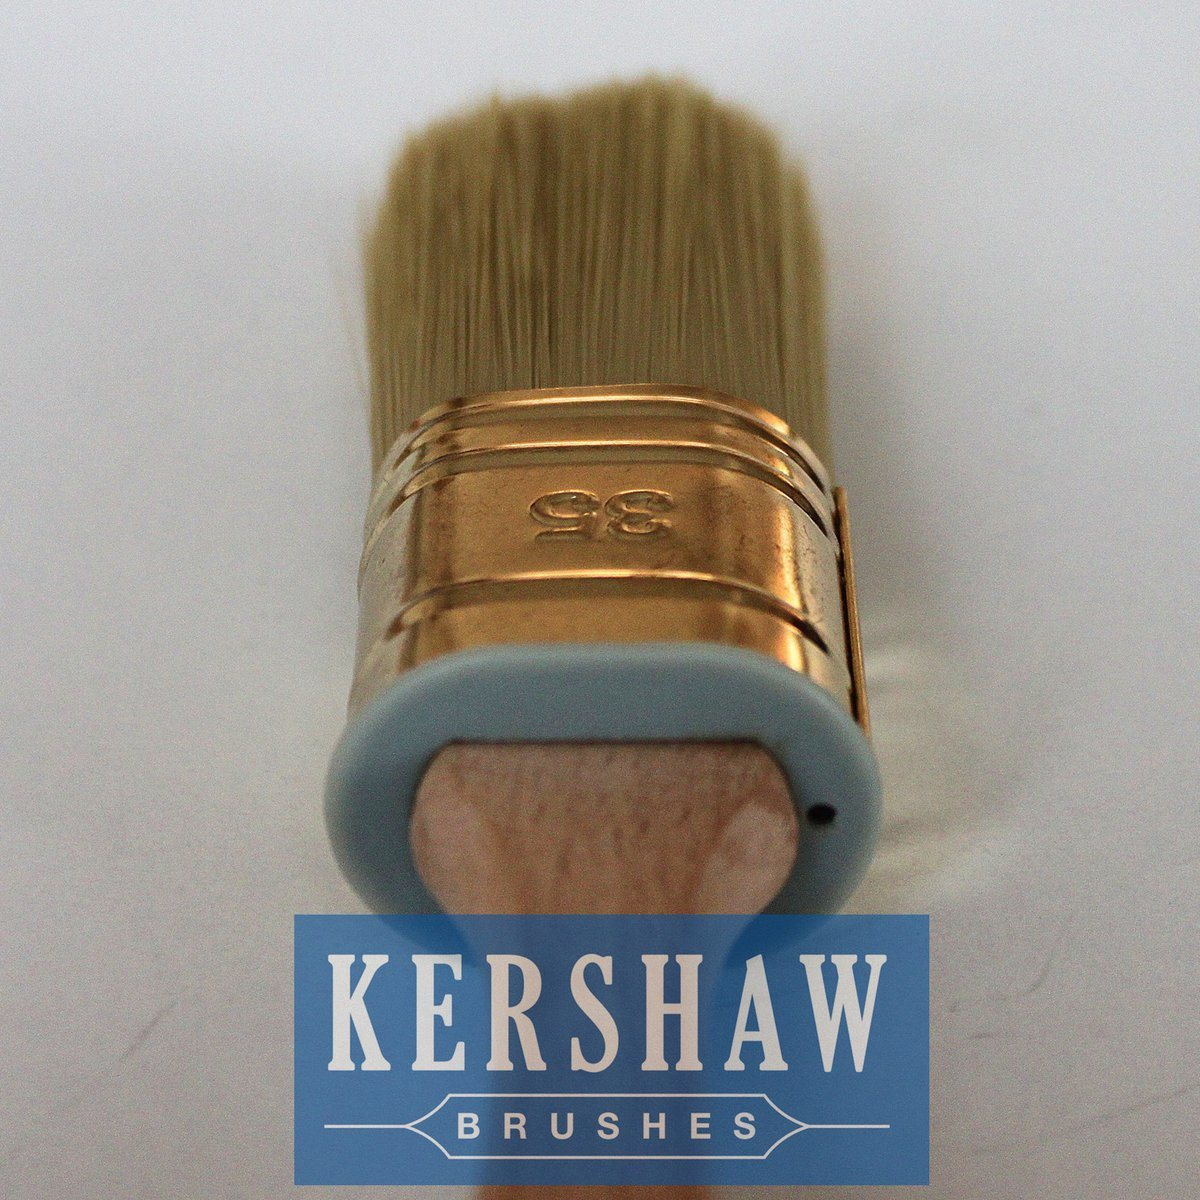 Paint Brush (Oval Brush tapered filament With Beech Wood Handle, paintbrush)